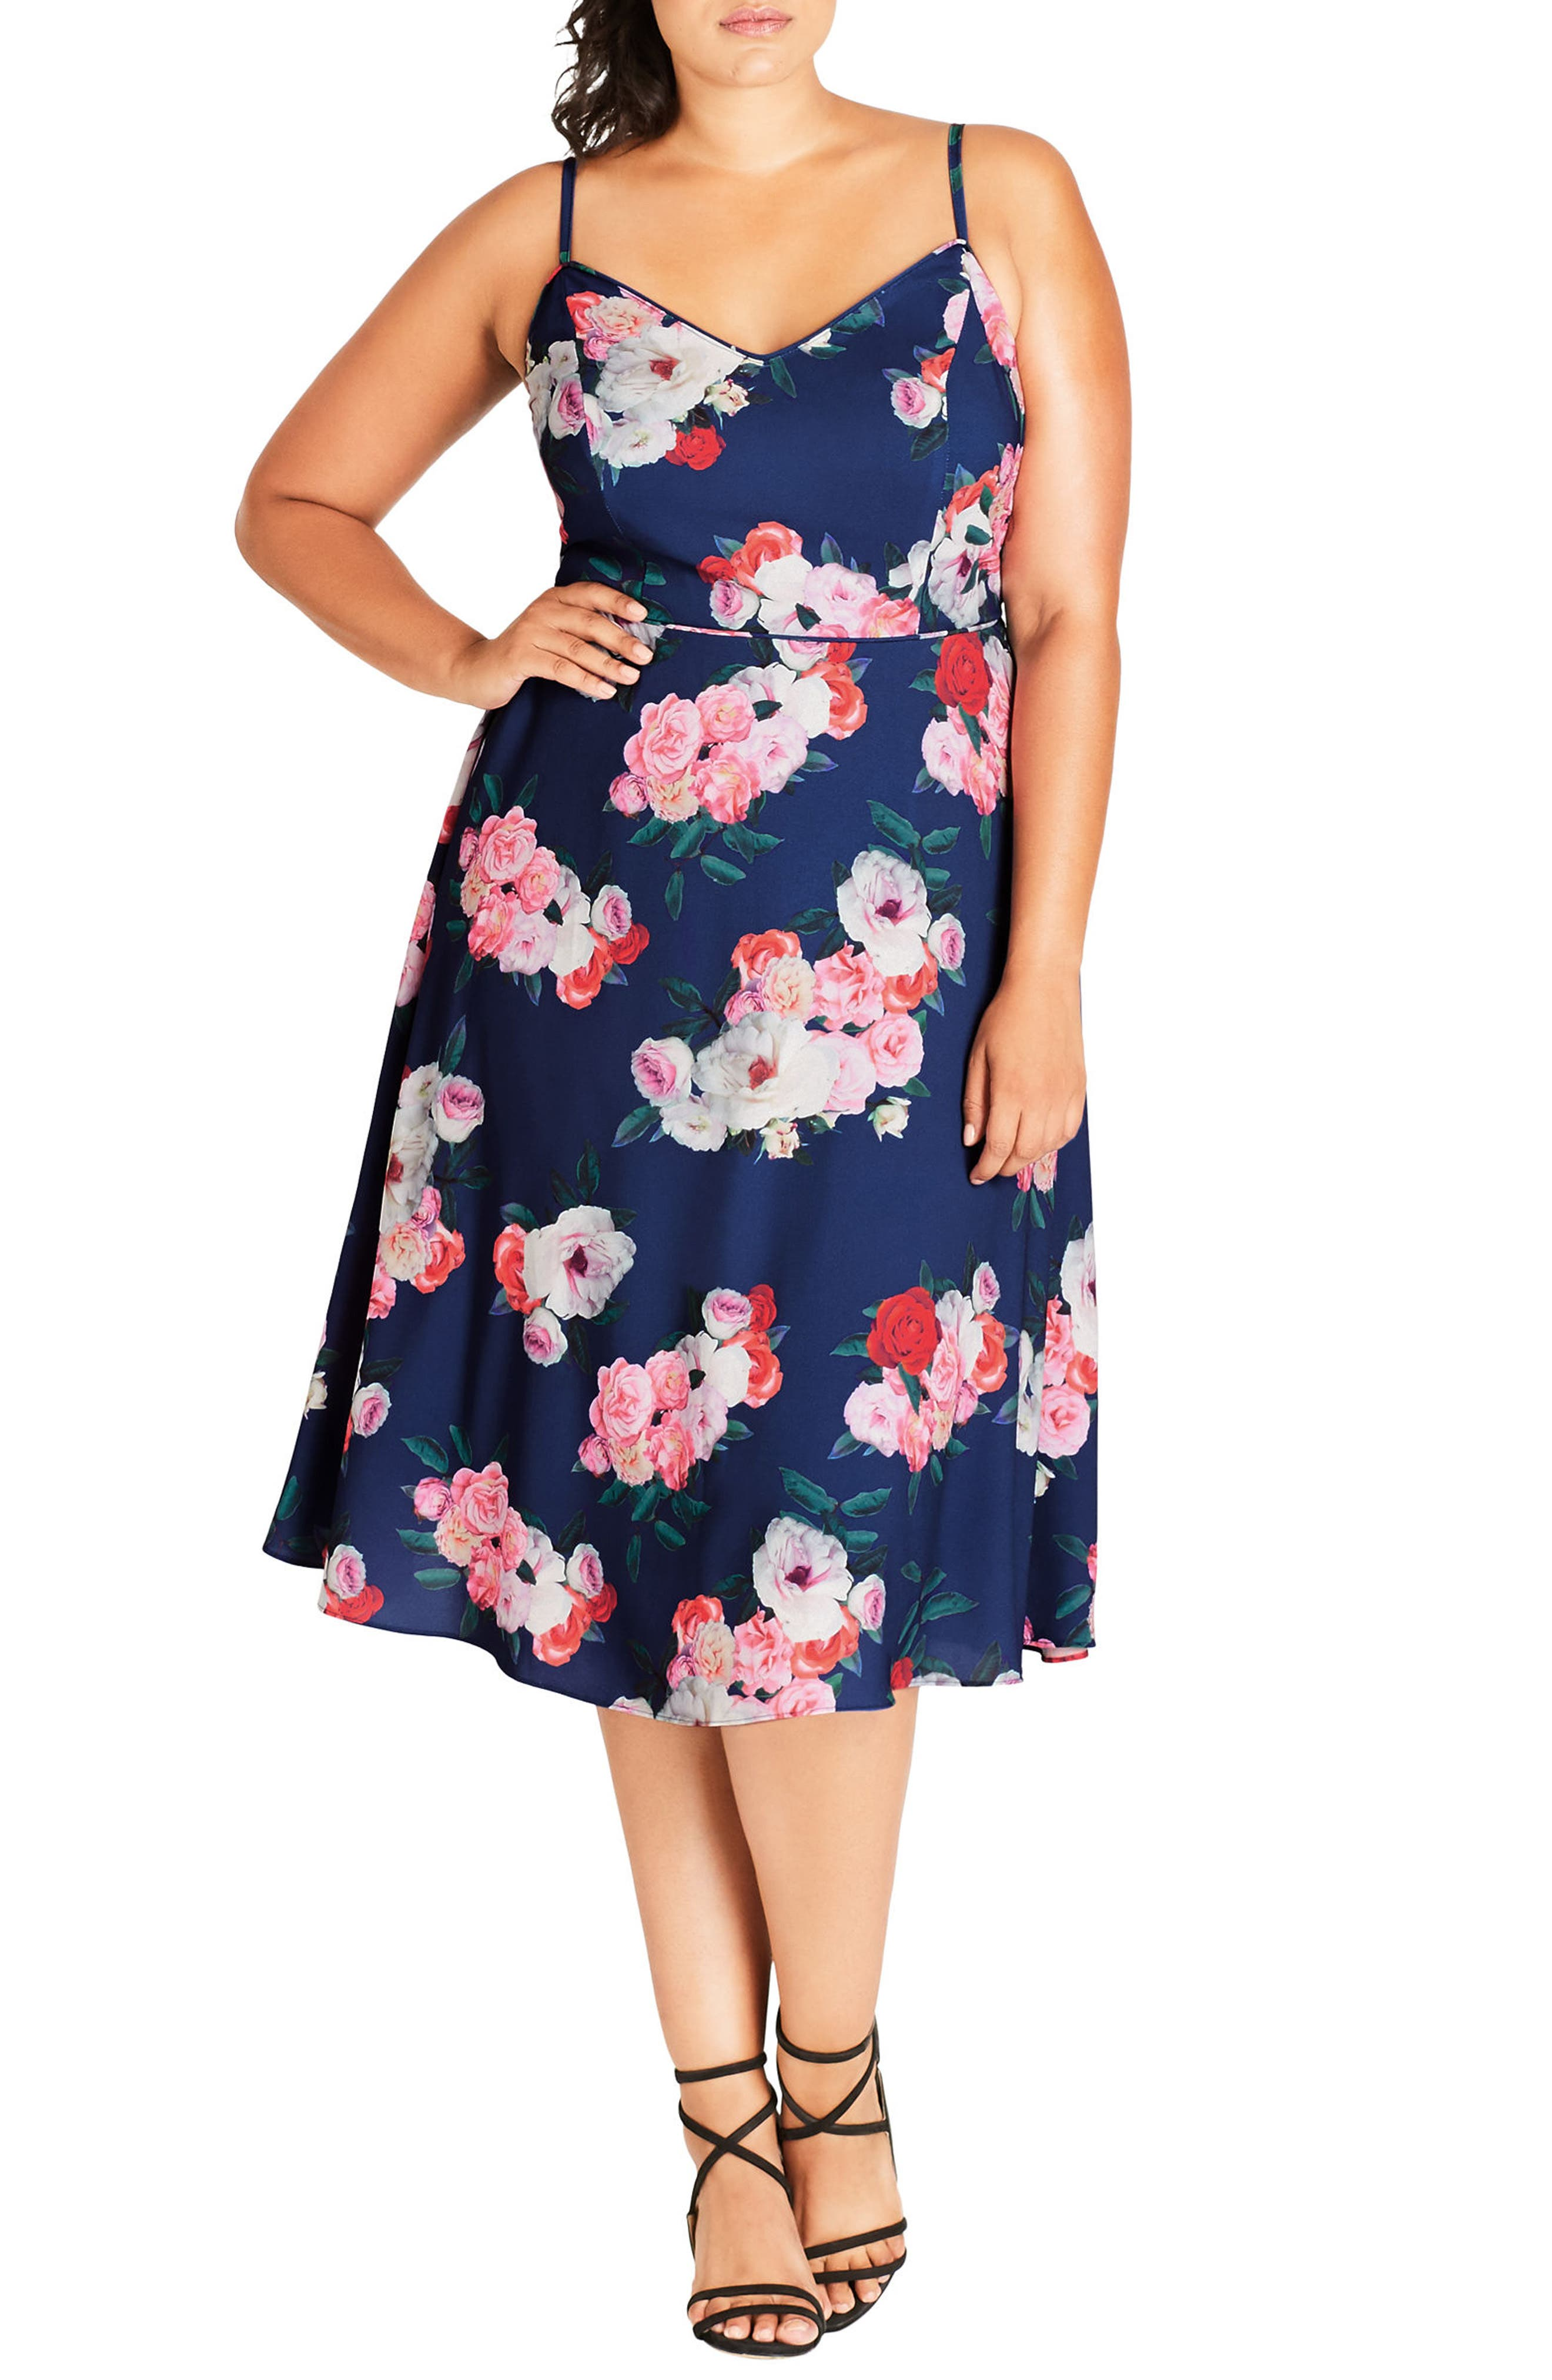 Alternate Image 1 Selected - City Chic Summer Fling Floral Print Midi Dress (Plus Size)